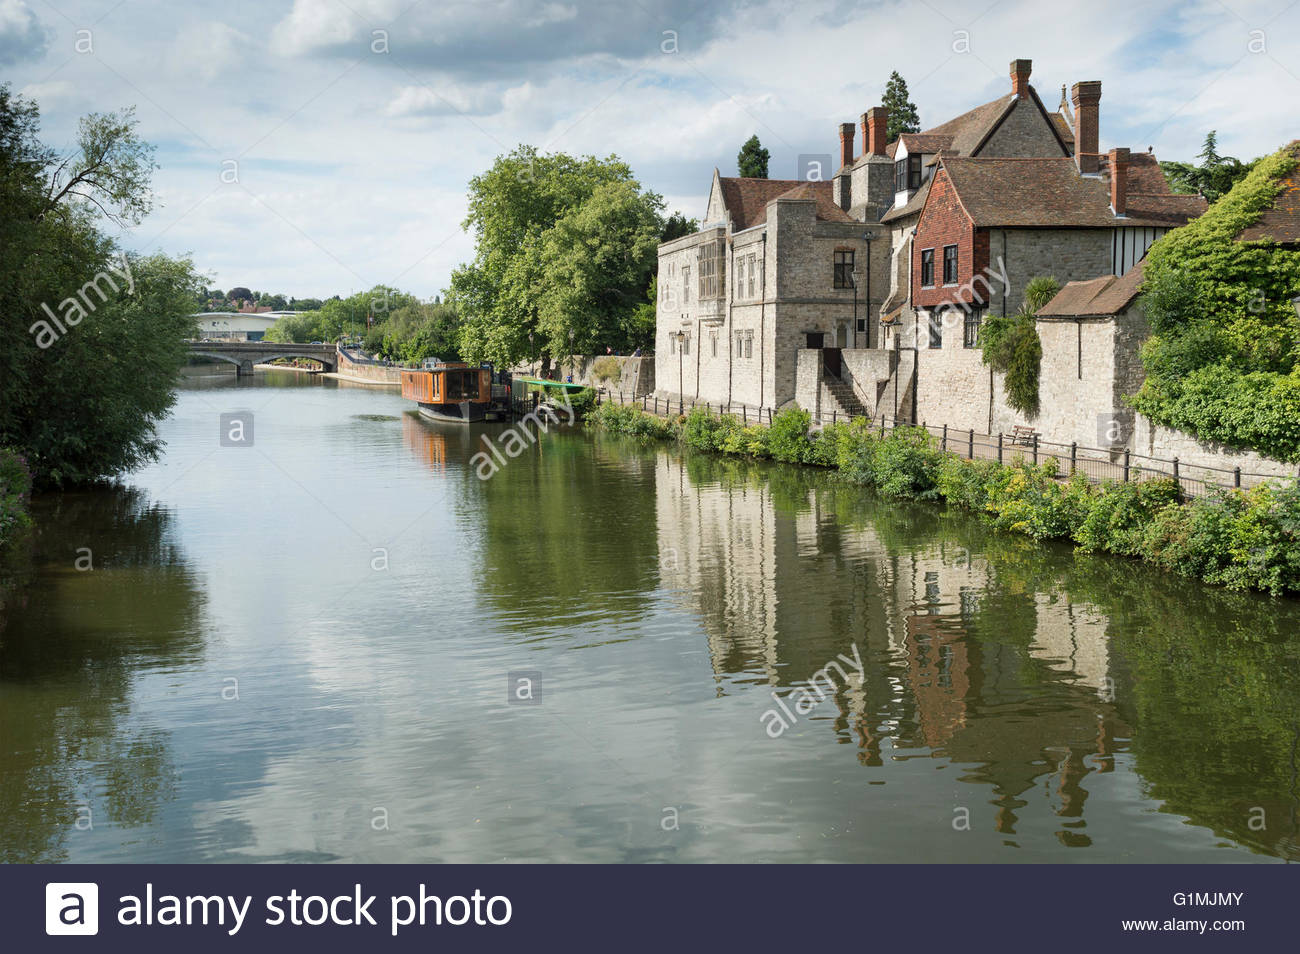 View along the River Medway at Maidstone to the opposite bank showing reflections in the water - Stock Image